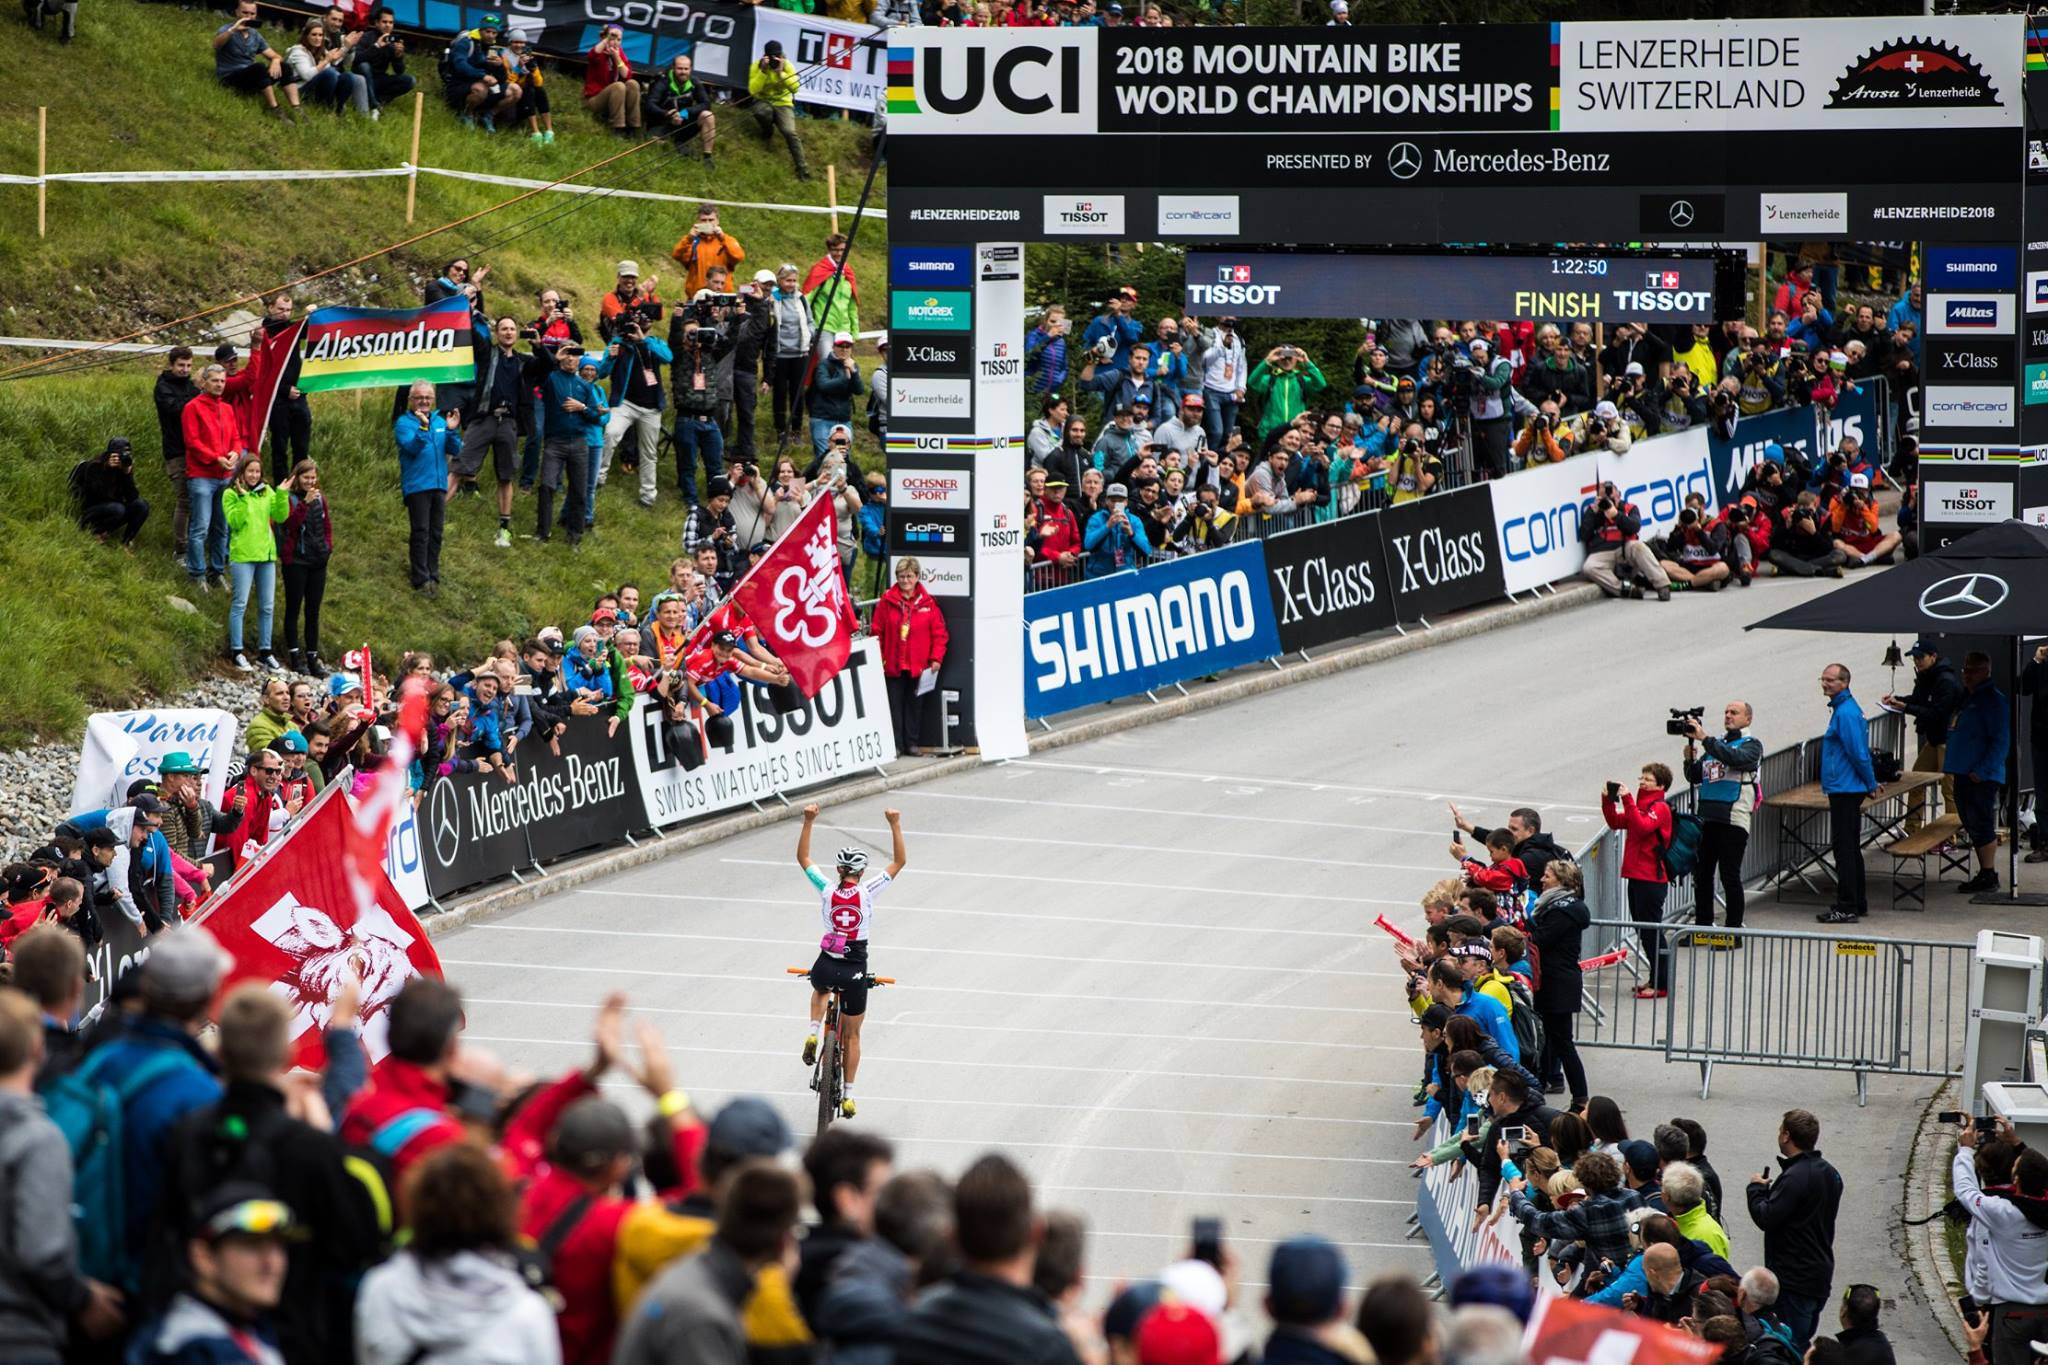 Home rider Alessandra Keller wins cross-country under-23 gold at the UCI Mountain Bike World Championships in Switzerland ©UCI